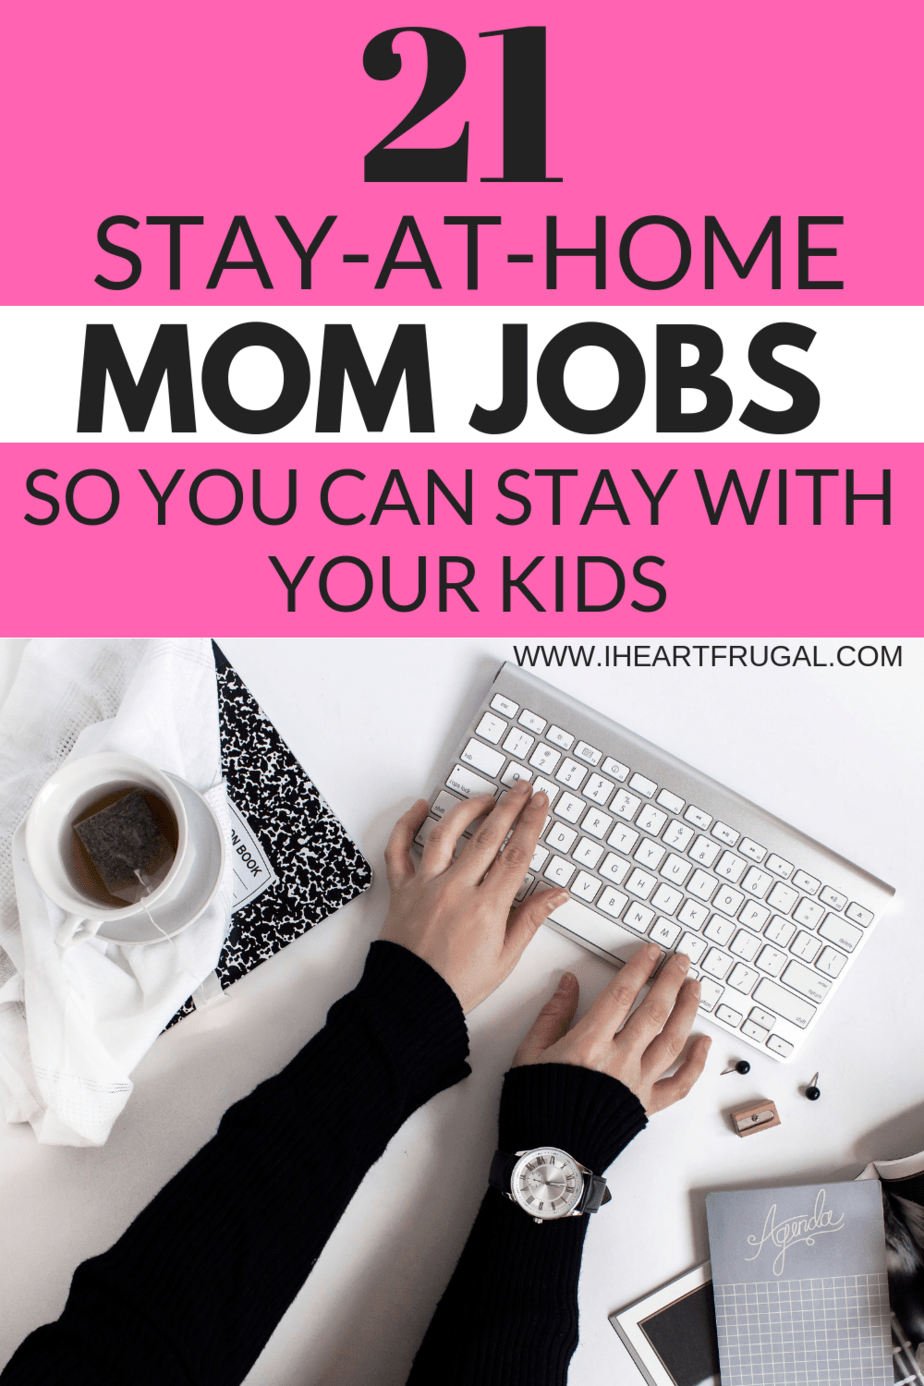 Stay-At-Home Mom Jobs